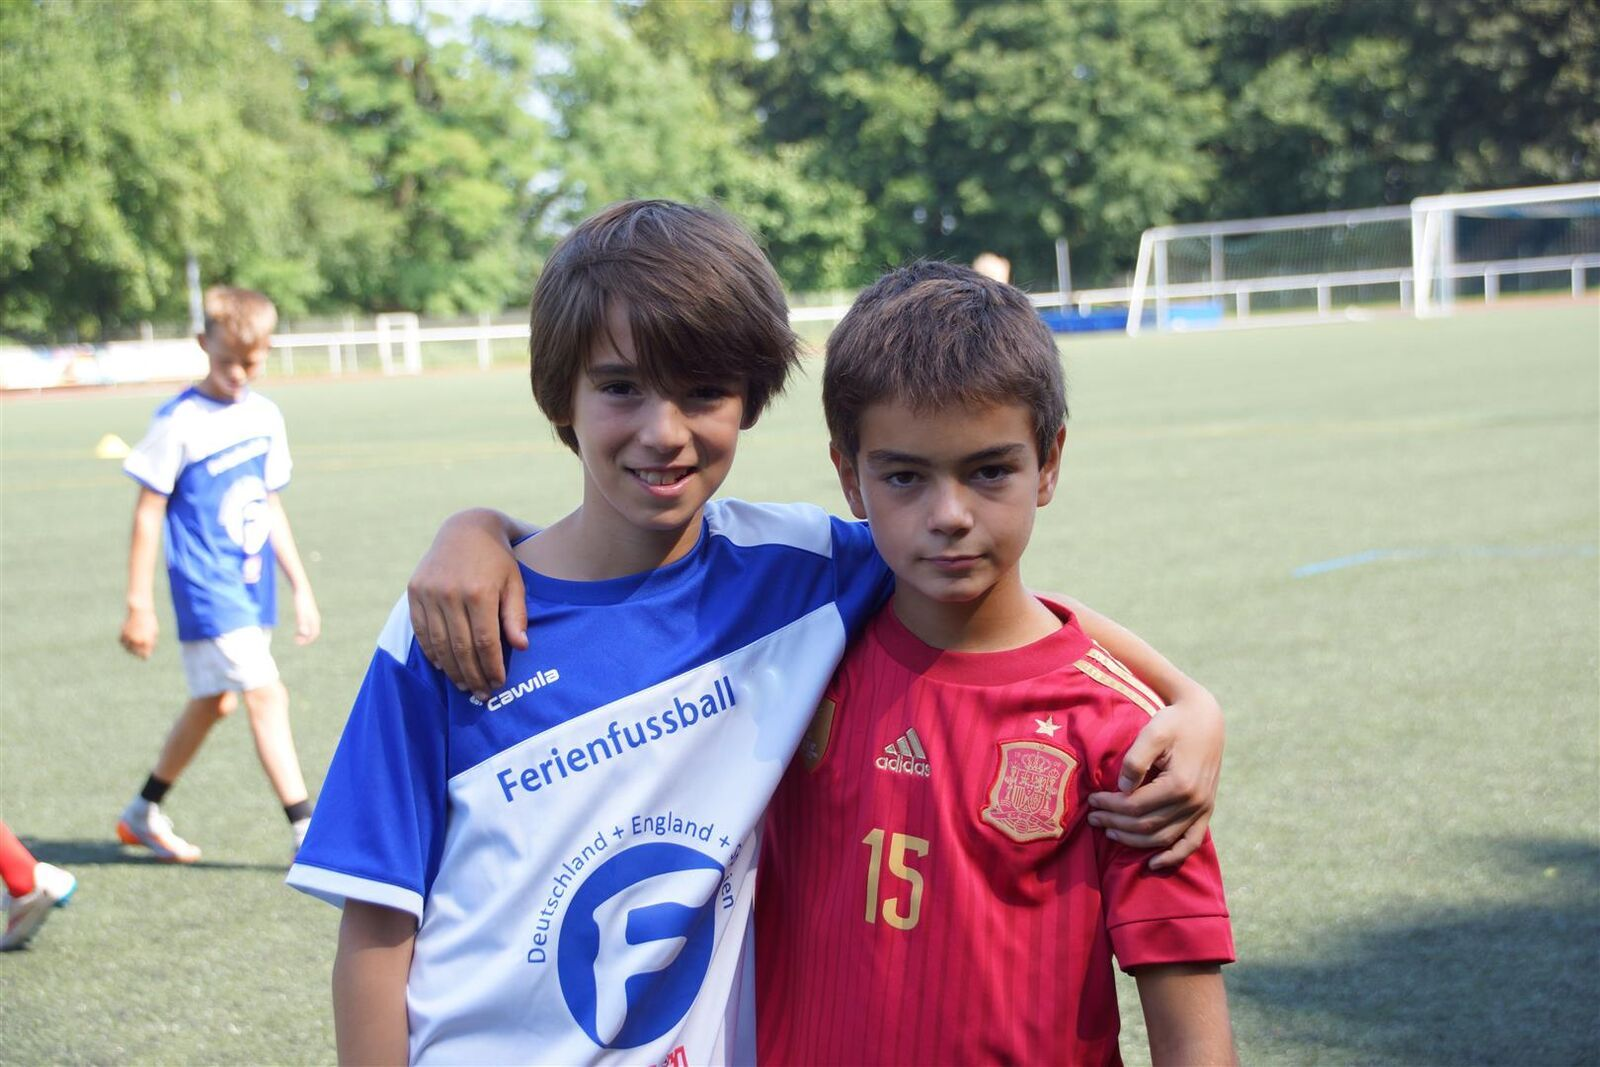 FerienFussball - International football Camp